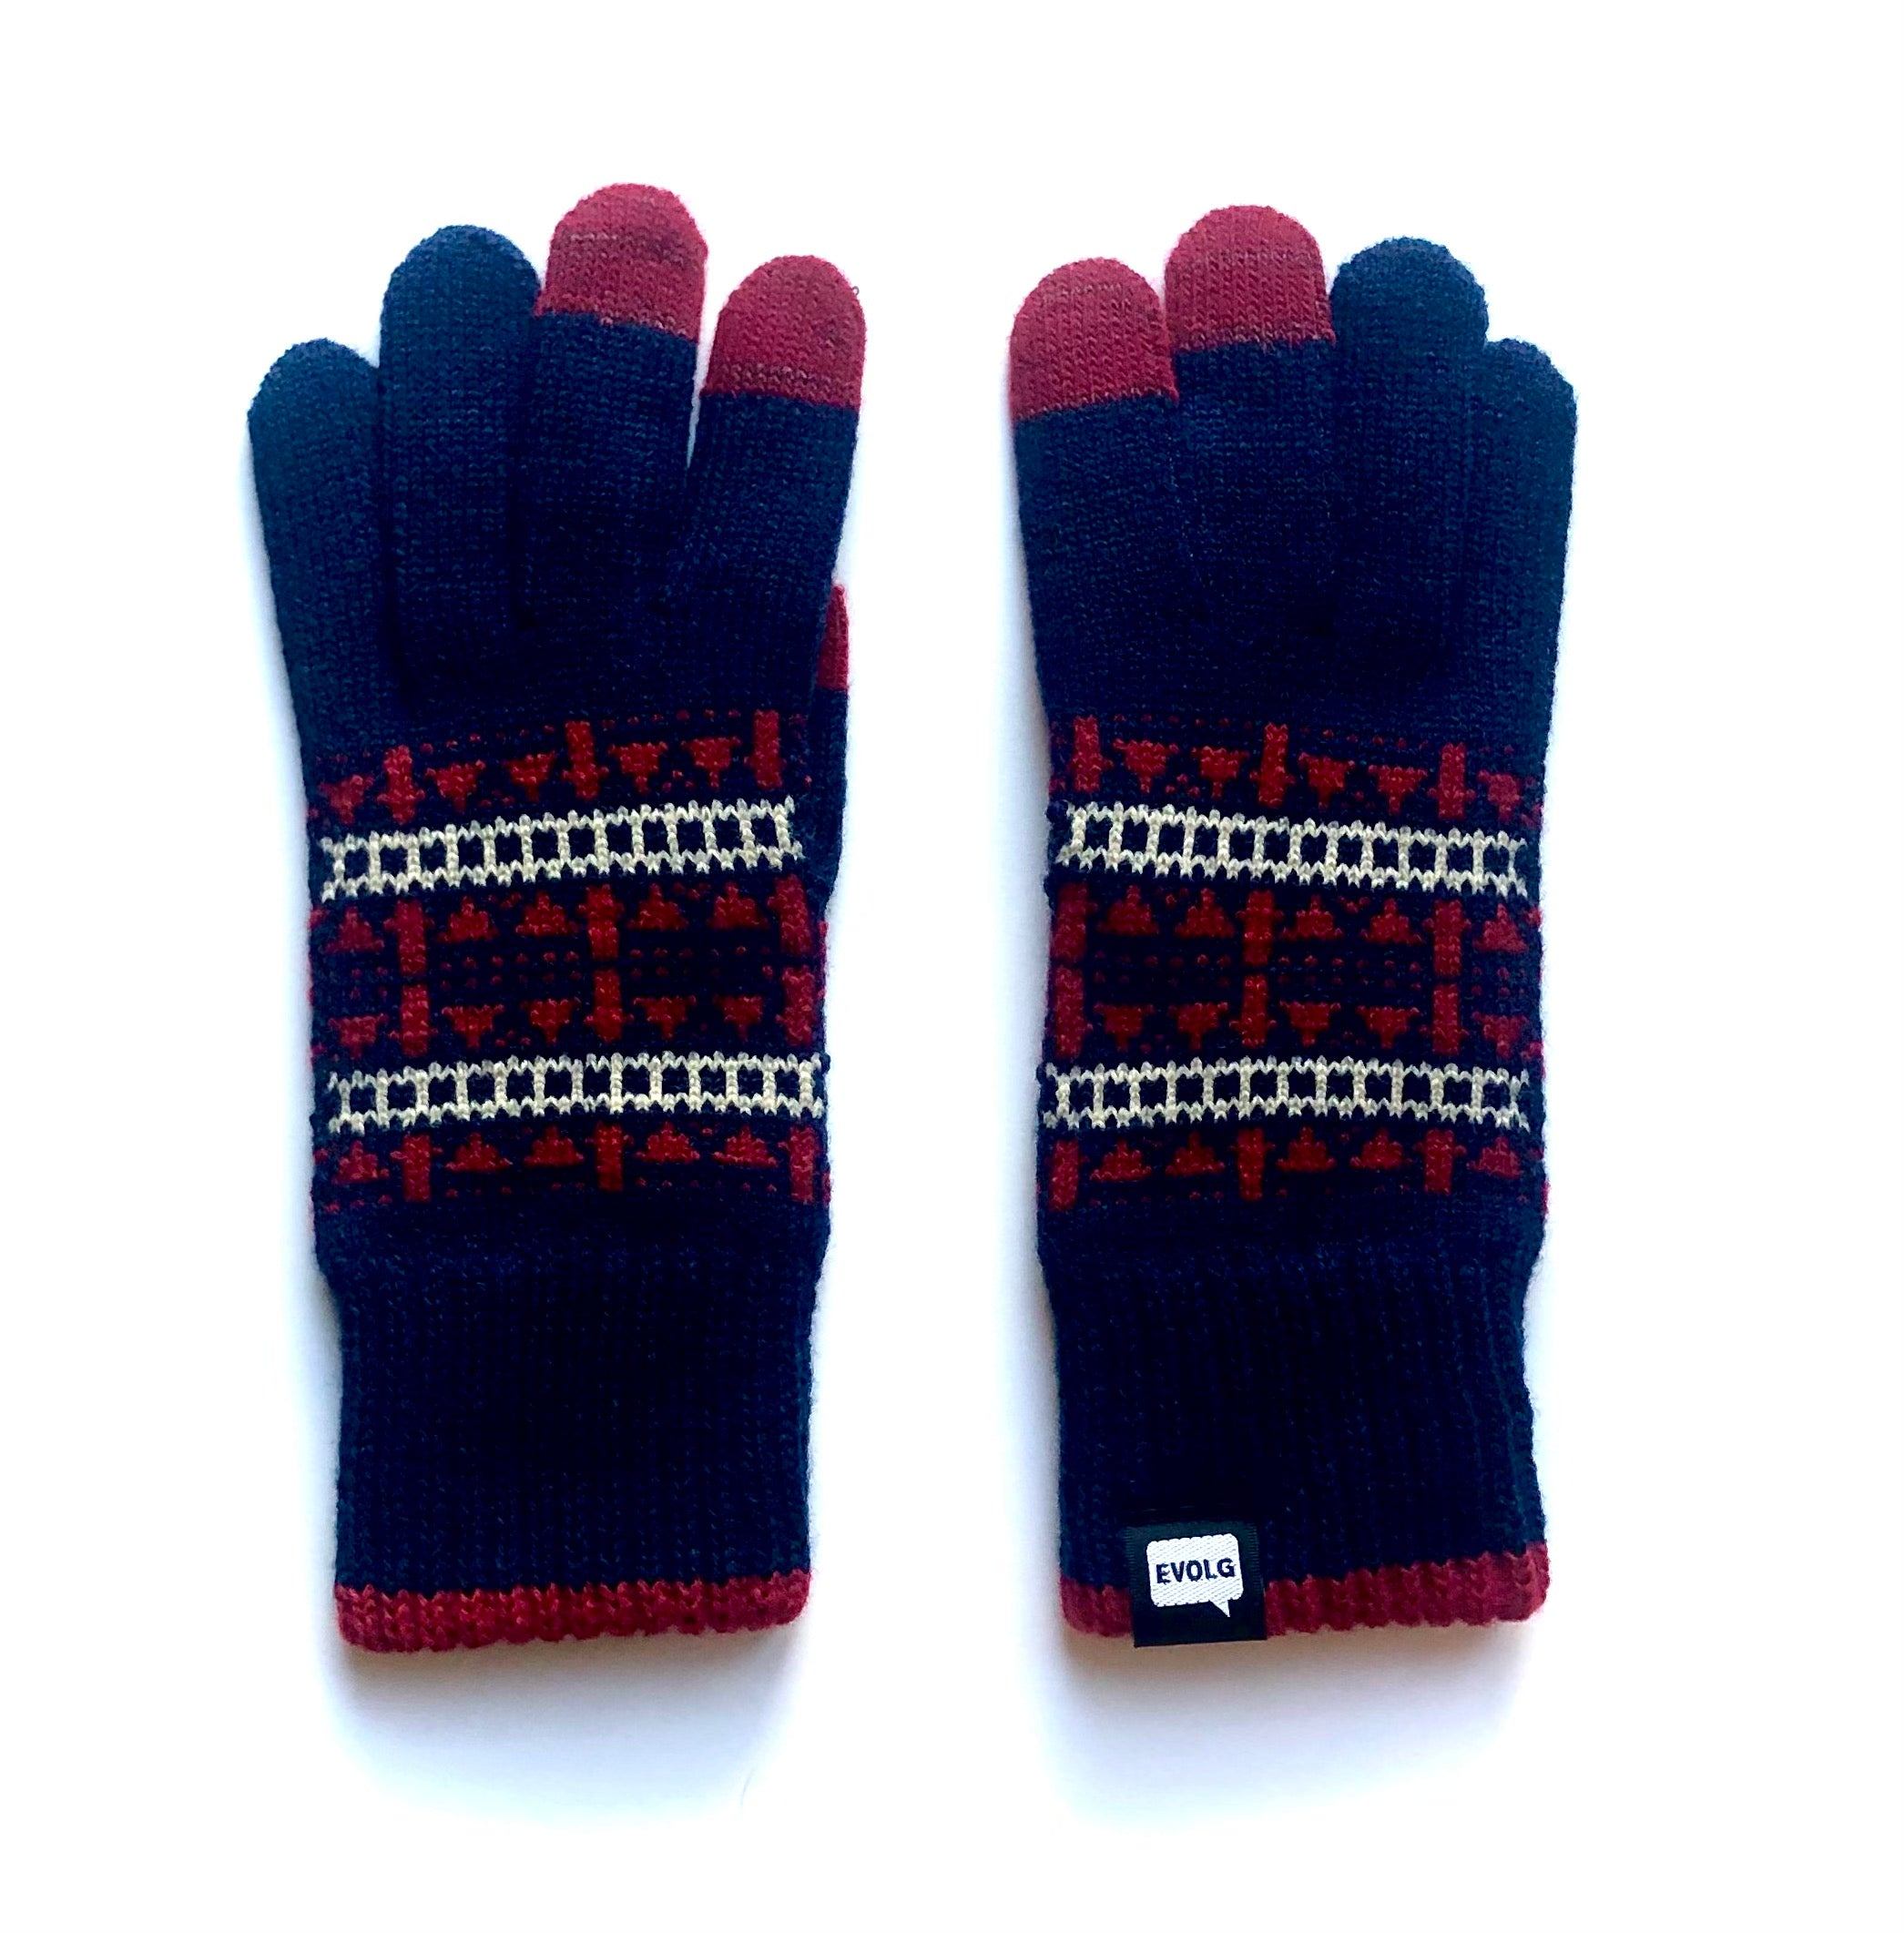 Evolg winter gloves